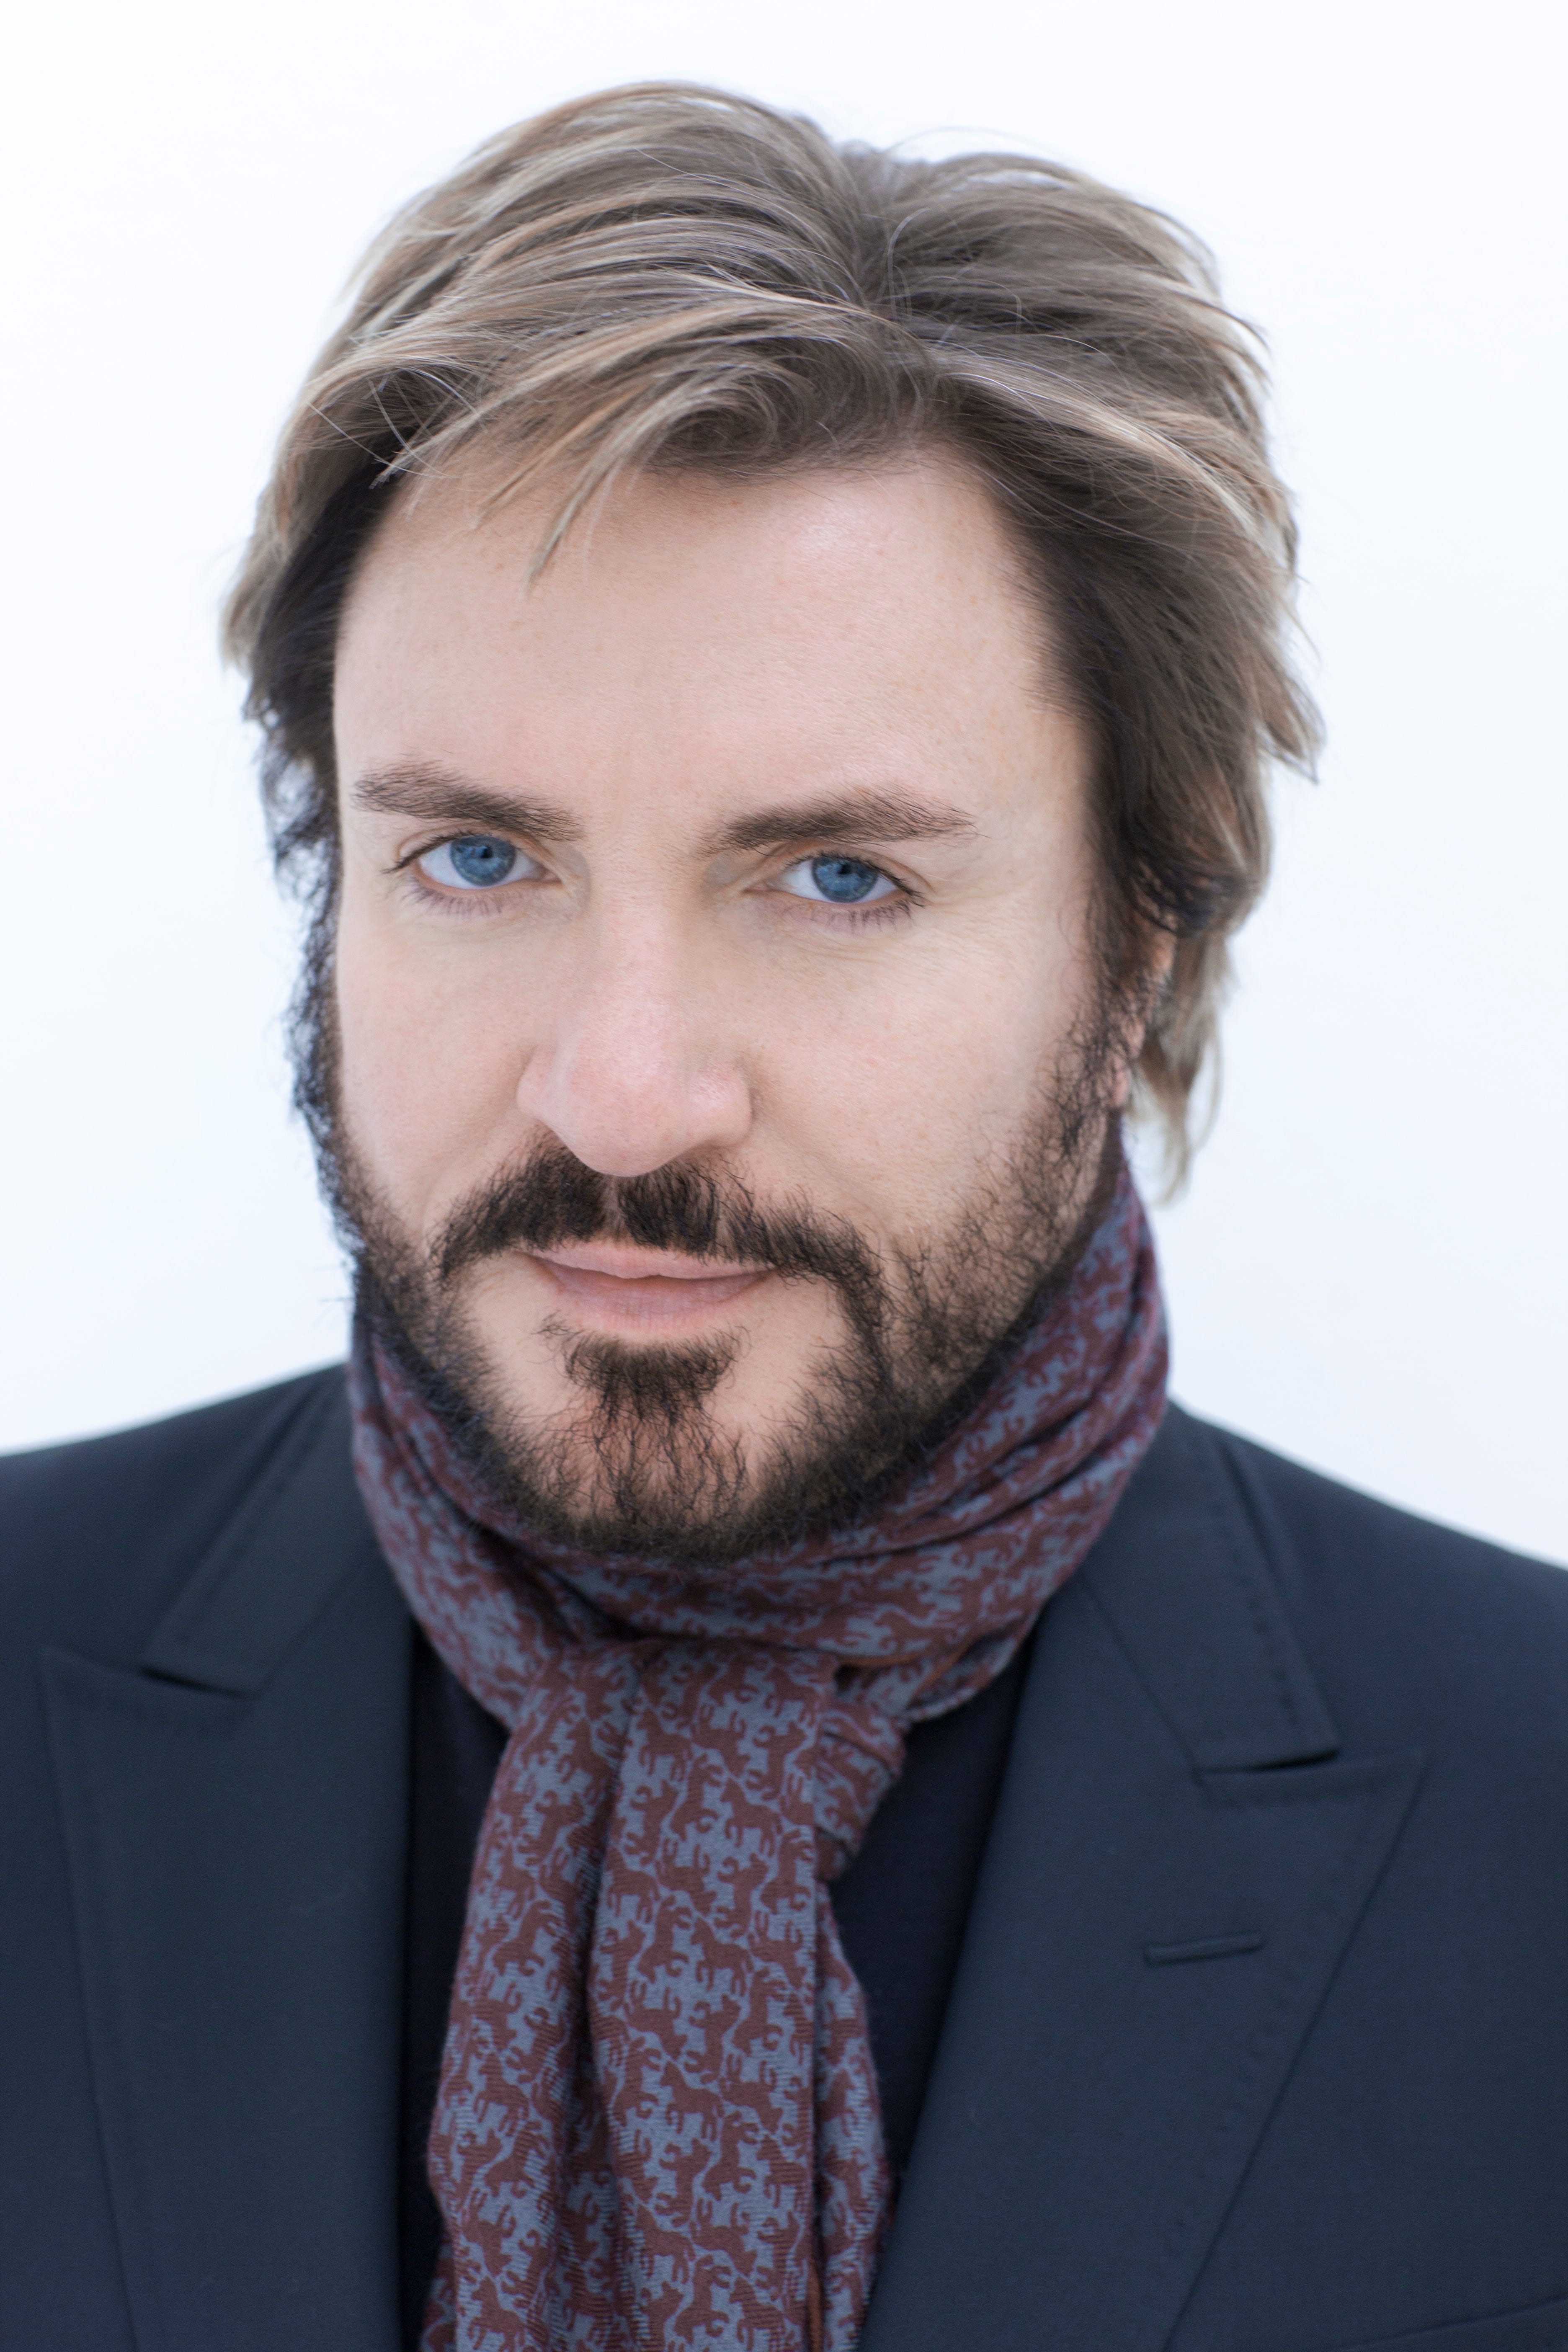 Simon Le Bon, lead singer of Duran Duran, is coming to Melbourne for